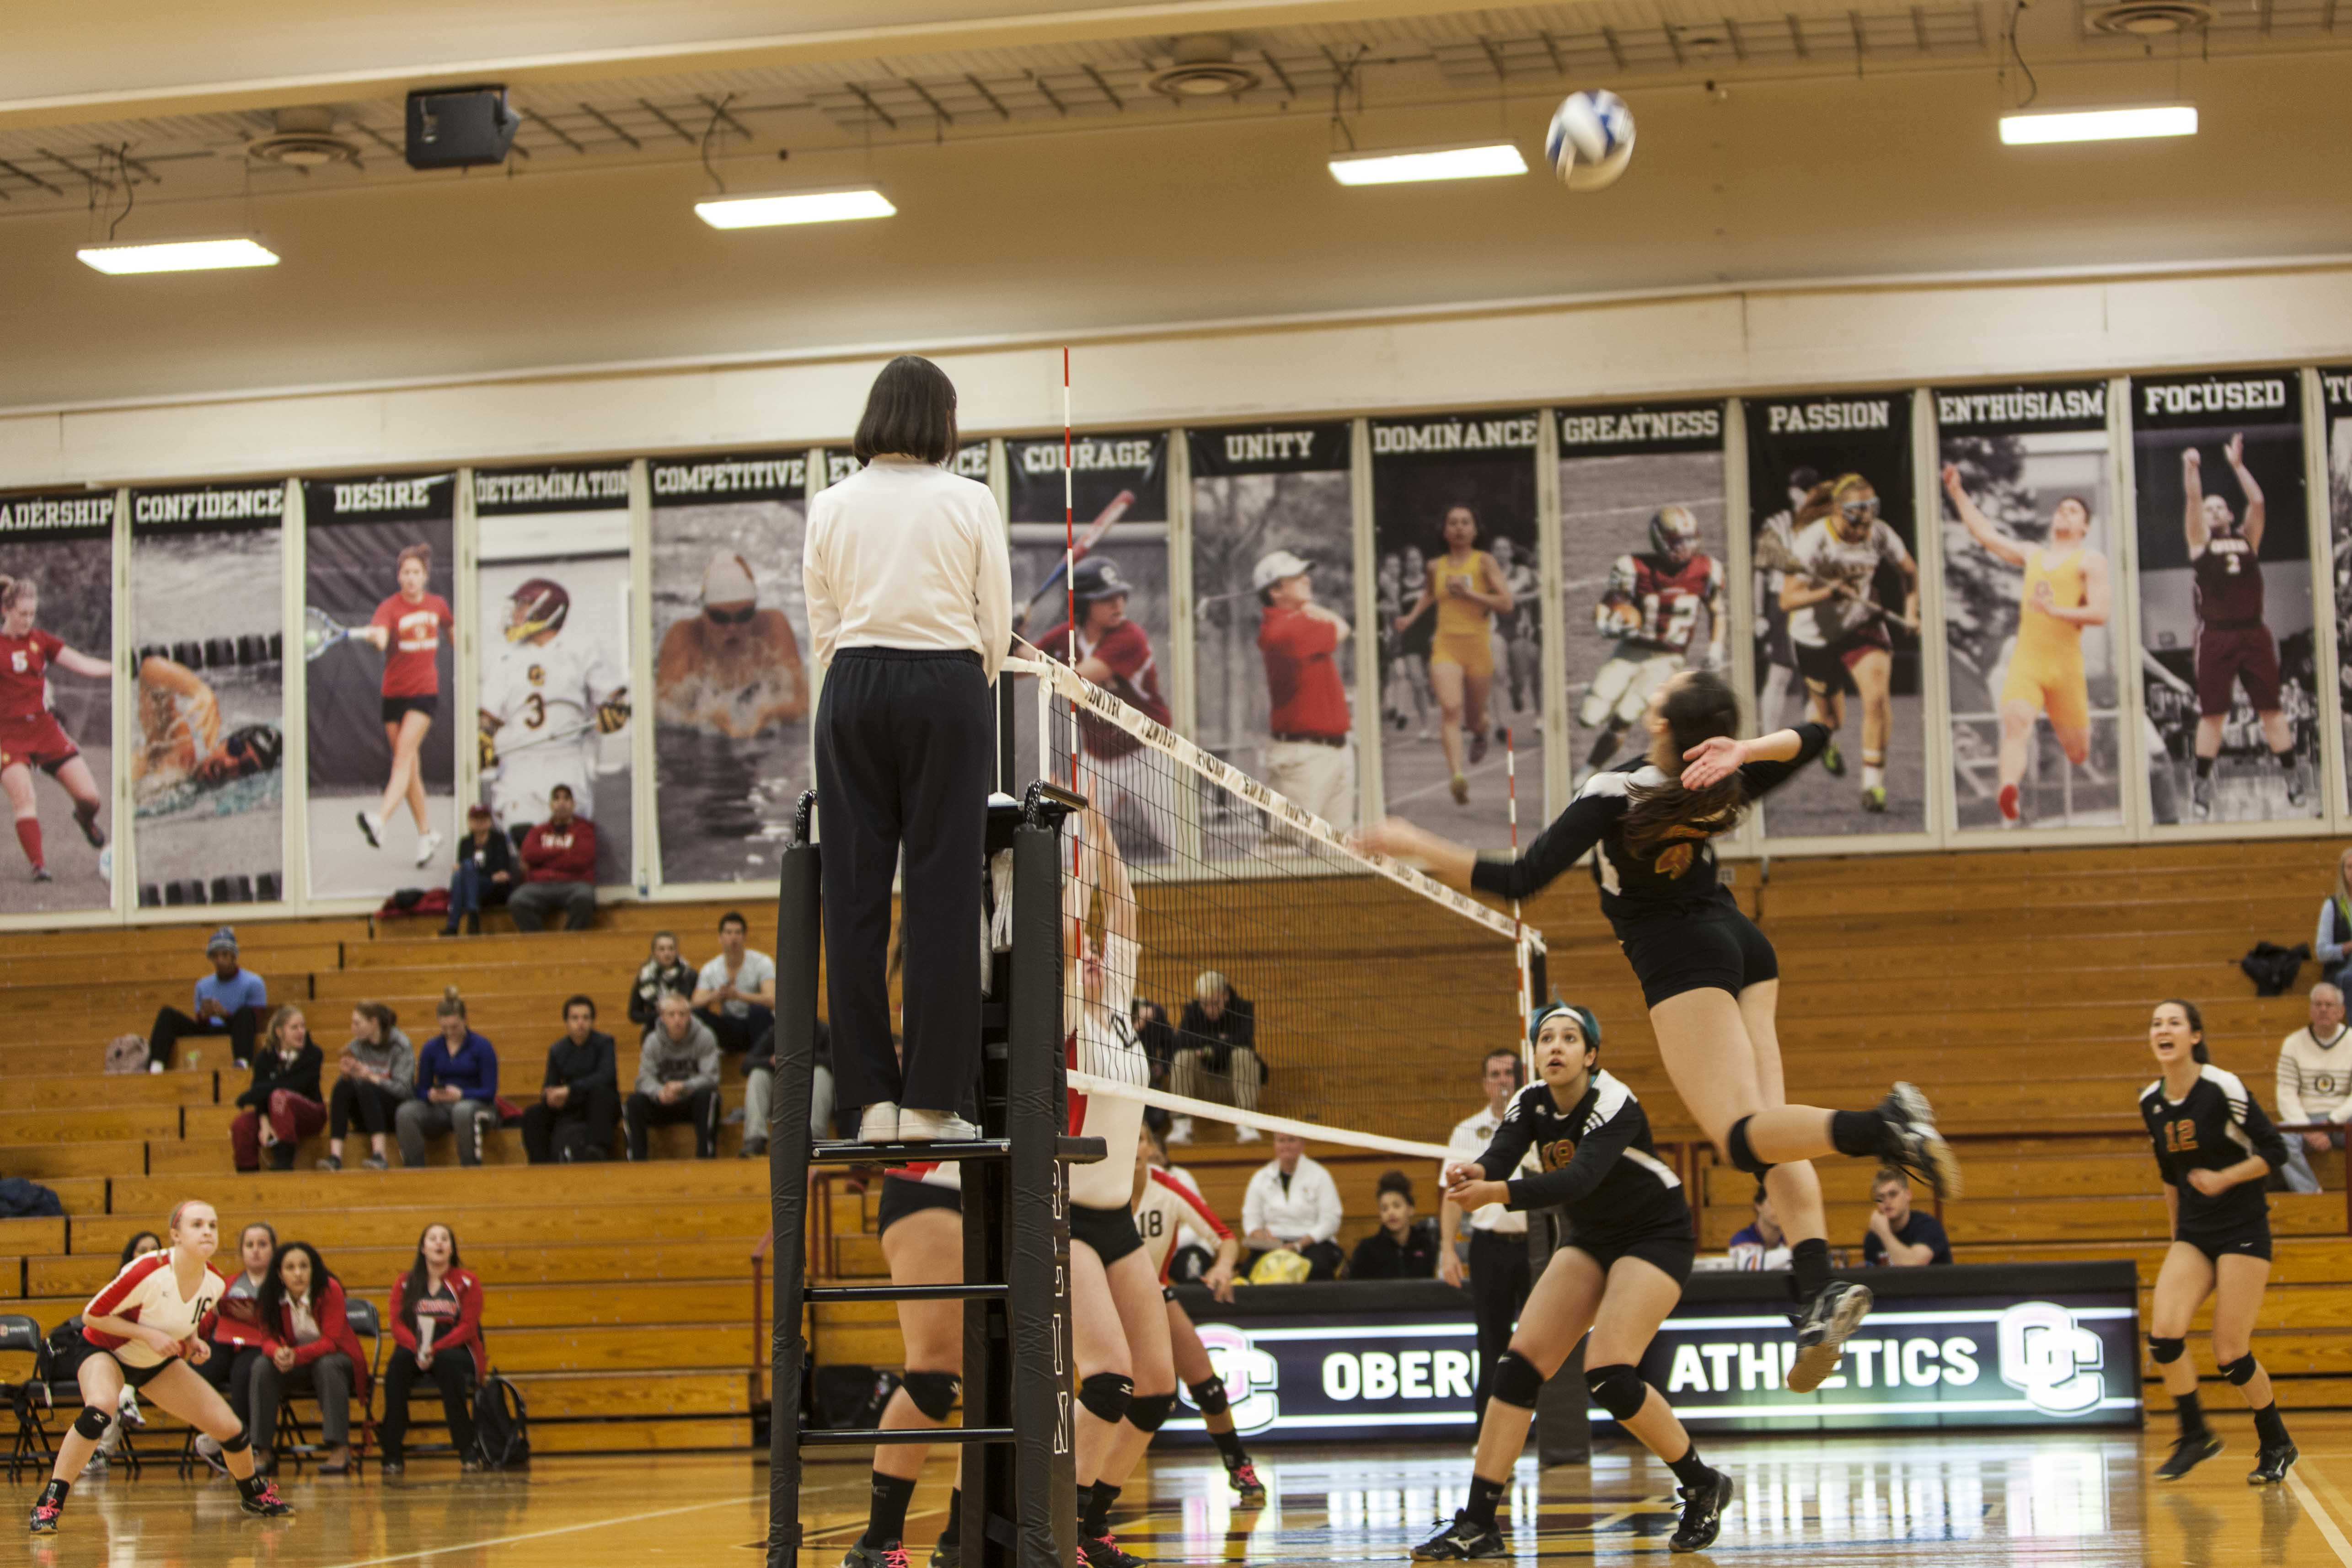 Senior Jillian Hostetler leaps for a spike against Denison University on Wednesday.